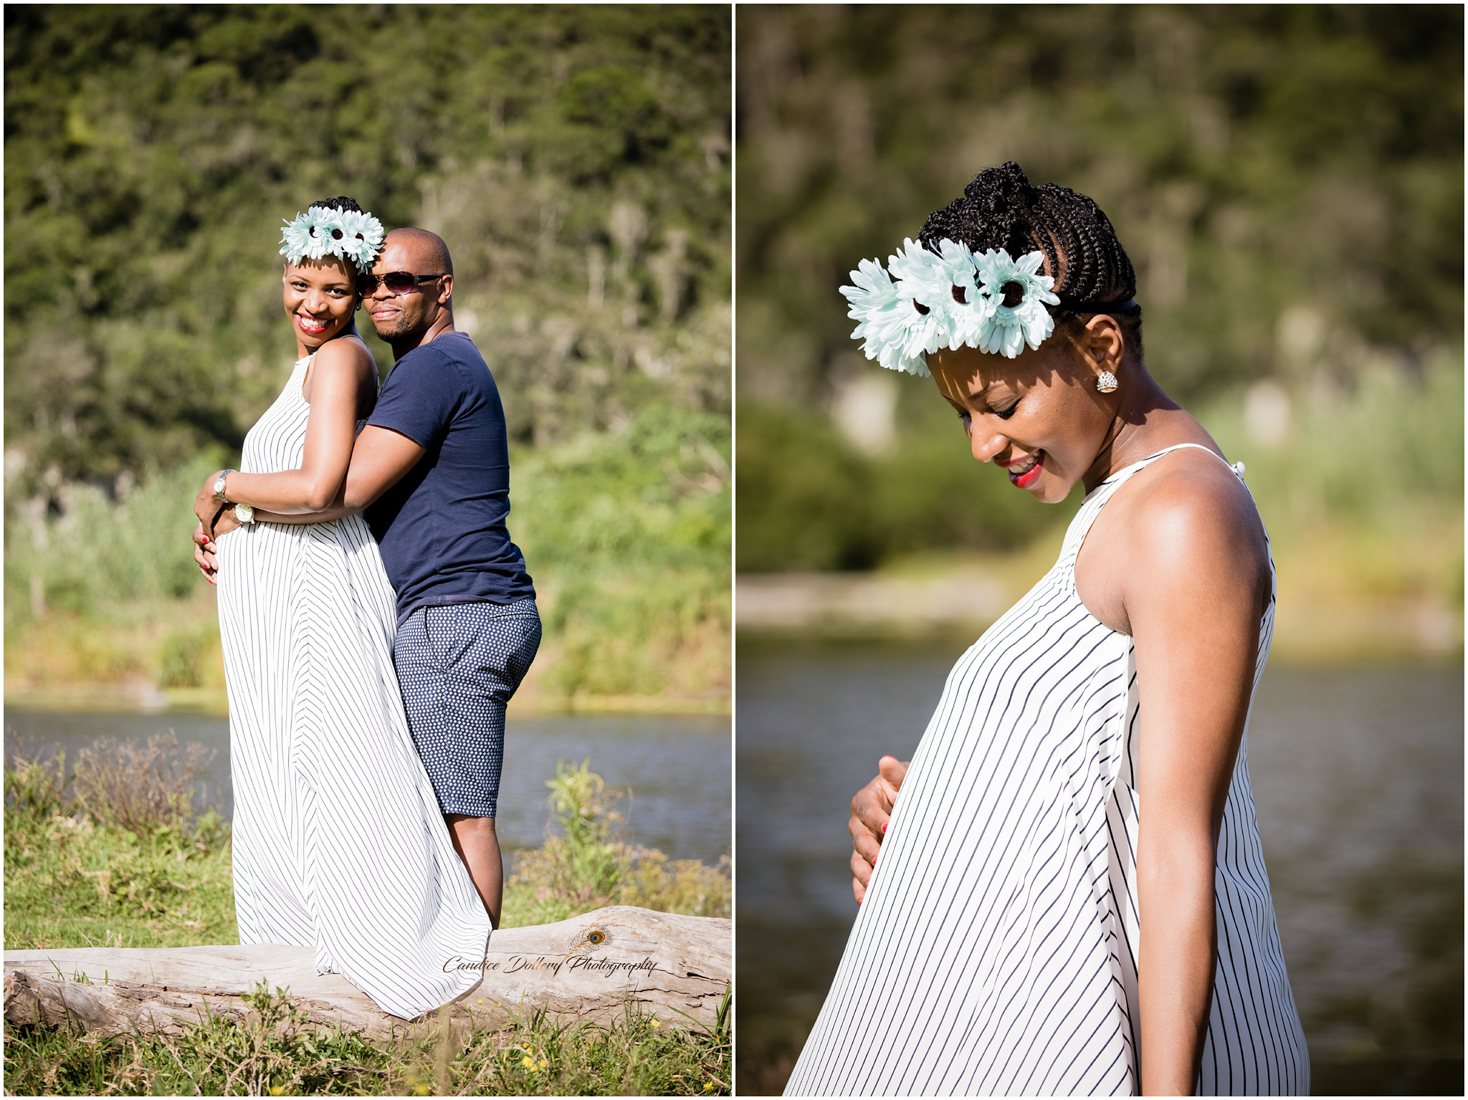 gcobisas-maternity-candice-dollery-photography_009